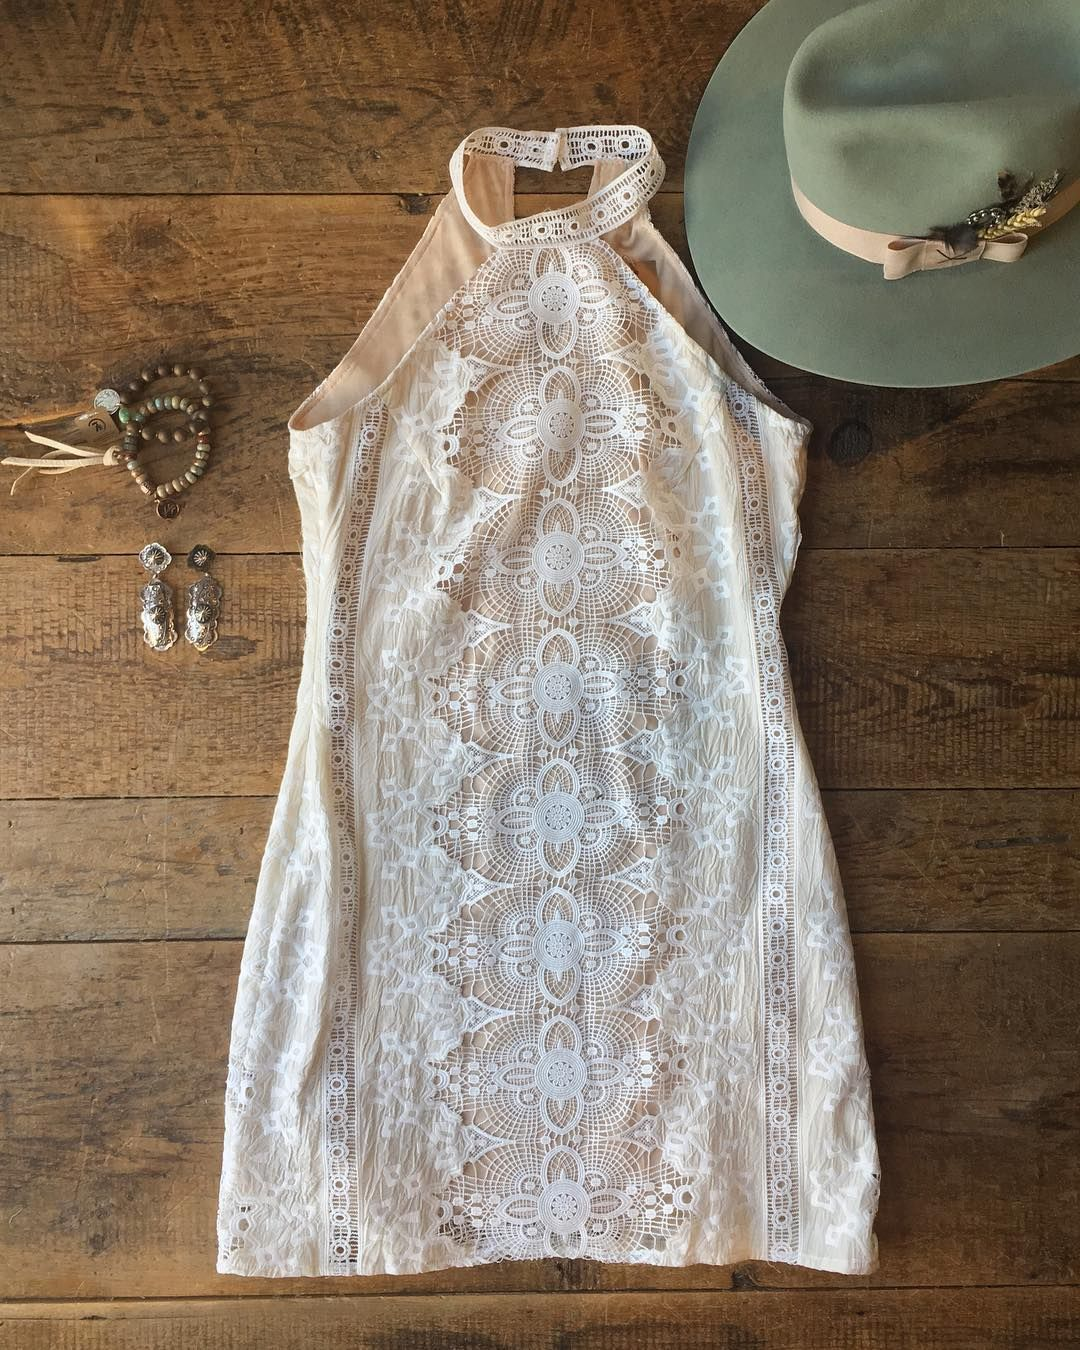 We were lucky enough to get a handful of the very last pieces of this gorgeous dress!! The Decatur is restocked but not for long #inlove #dreamy #amazingfit #savannah7s